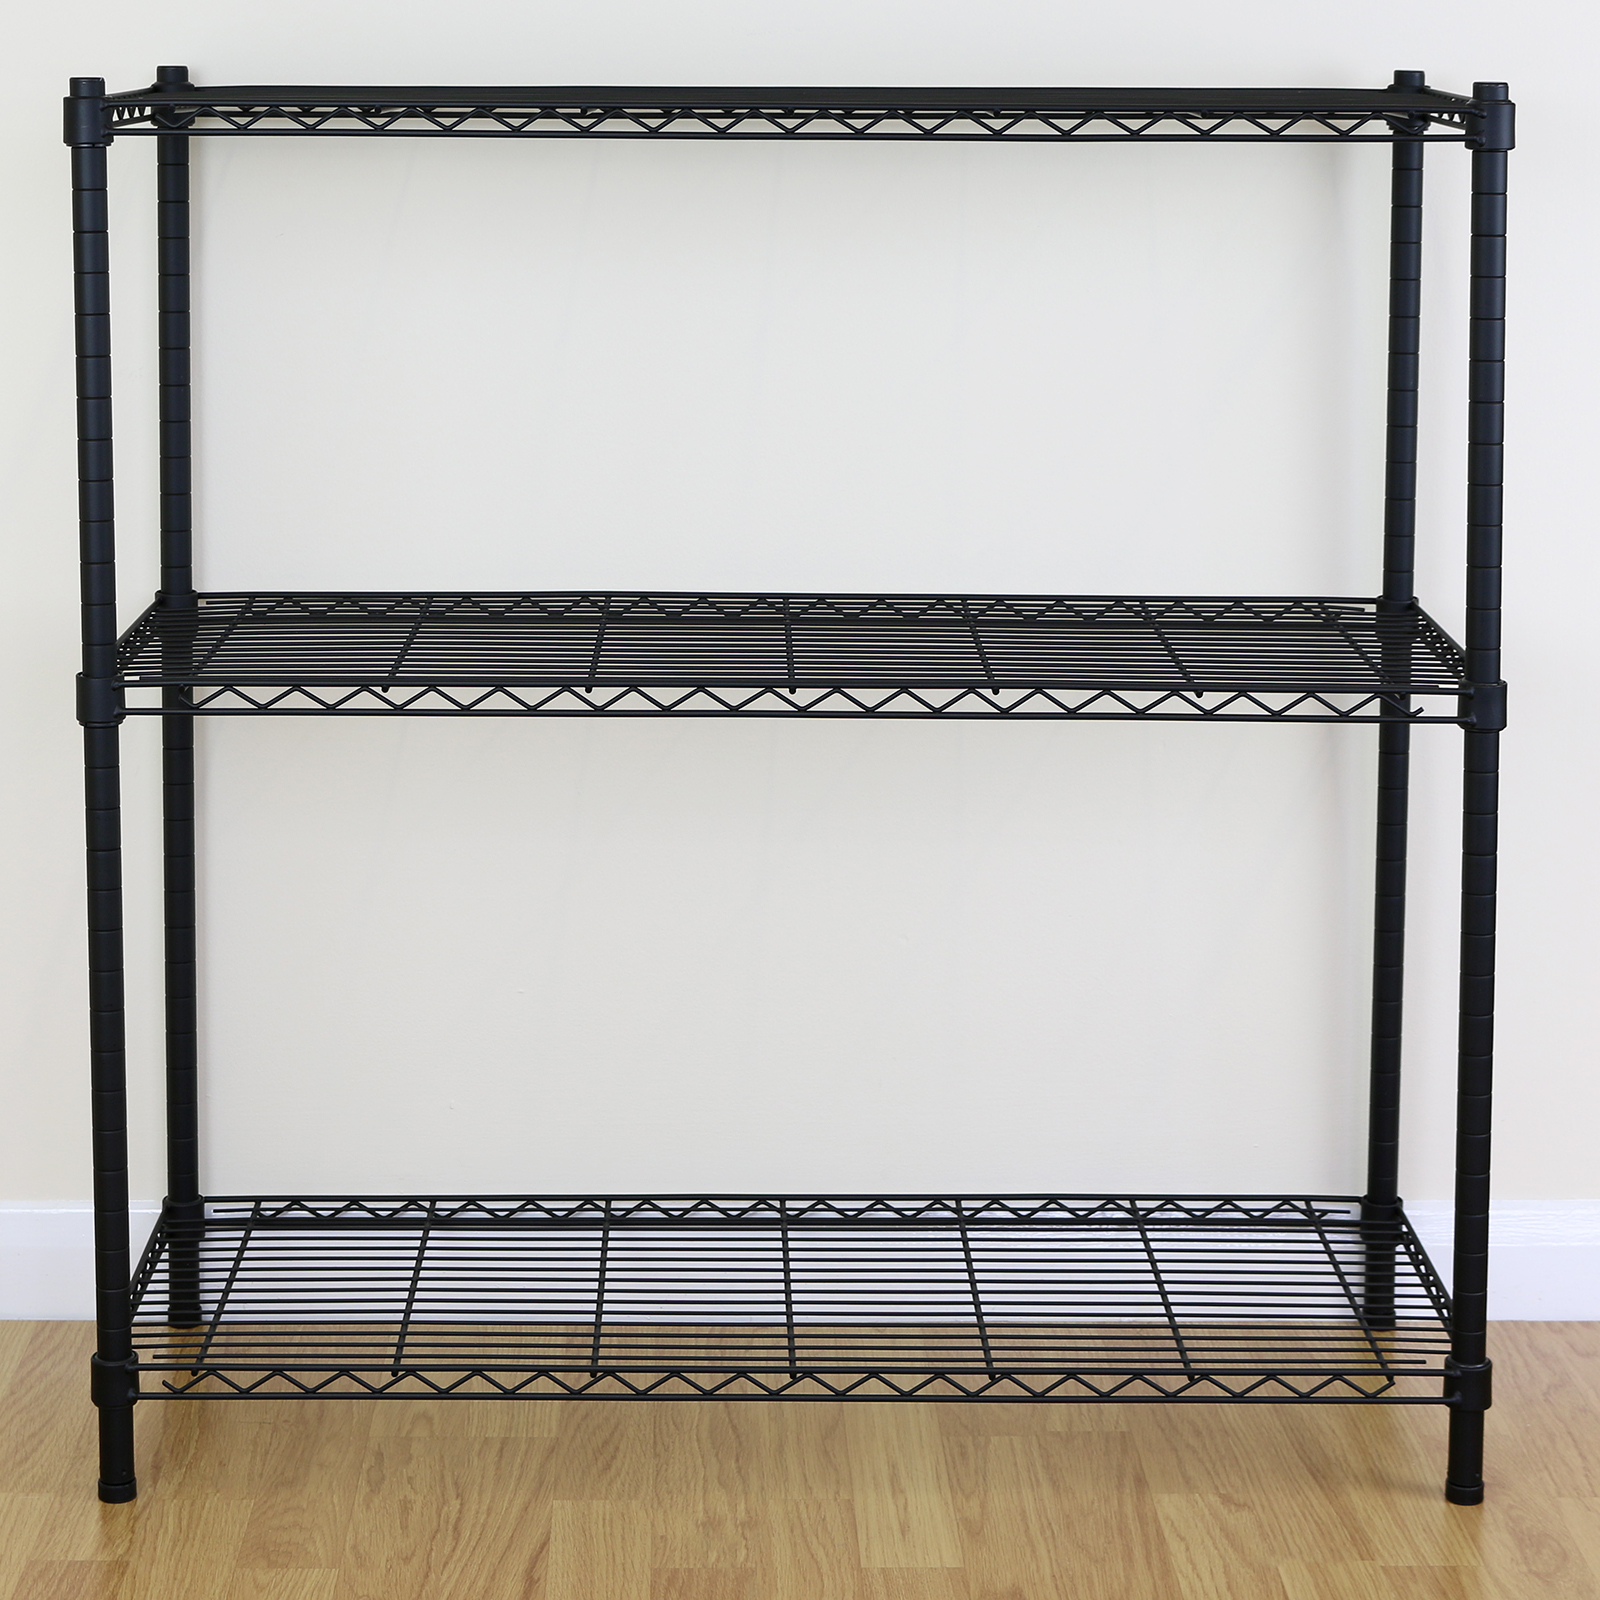 Kitchen Shelf Metal: 3 Tier Black Metal Storage Rack/Shelving Wire Shelf